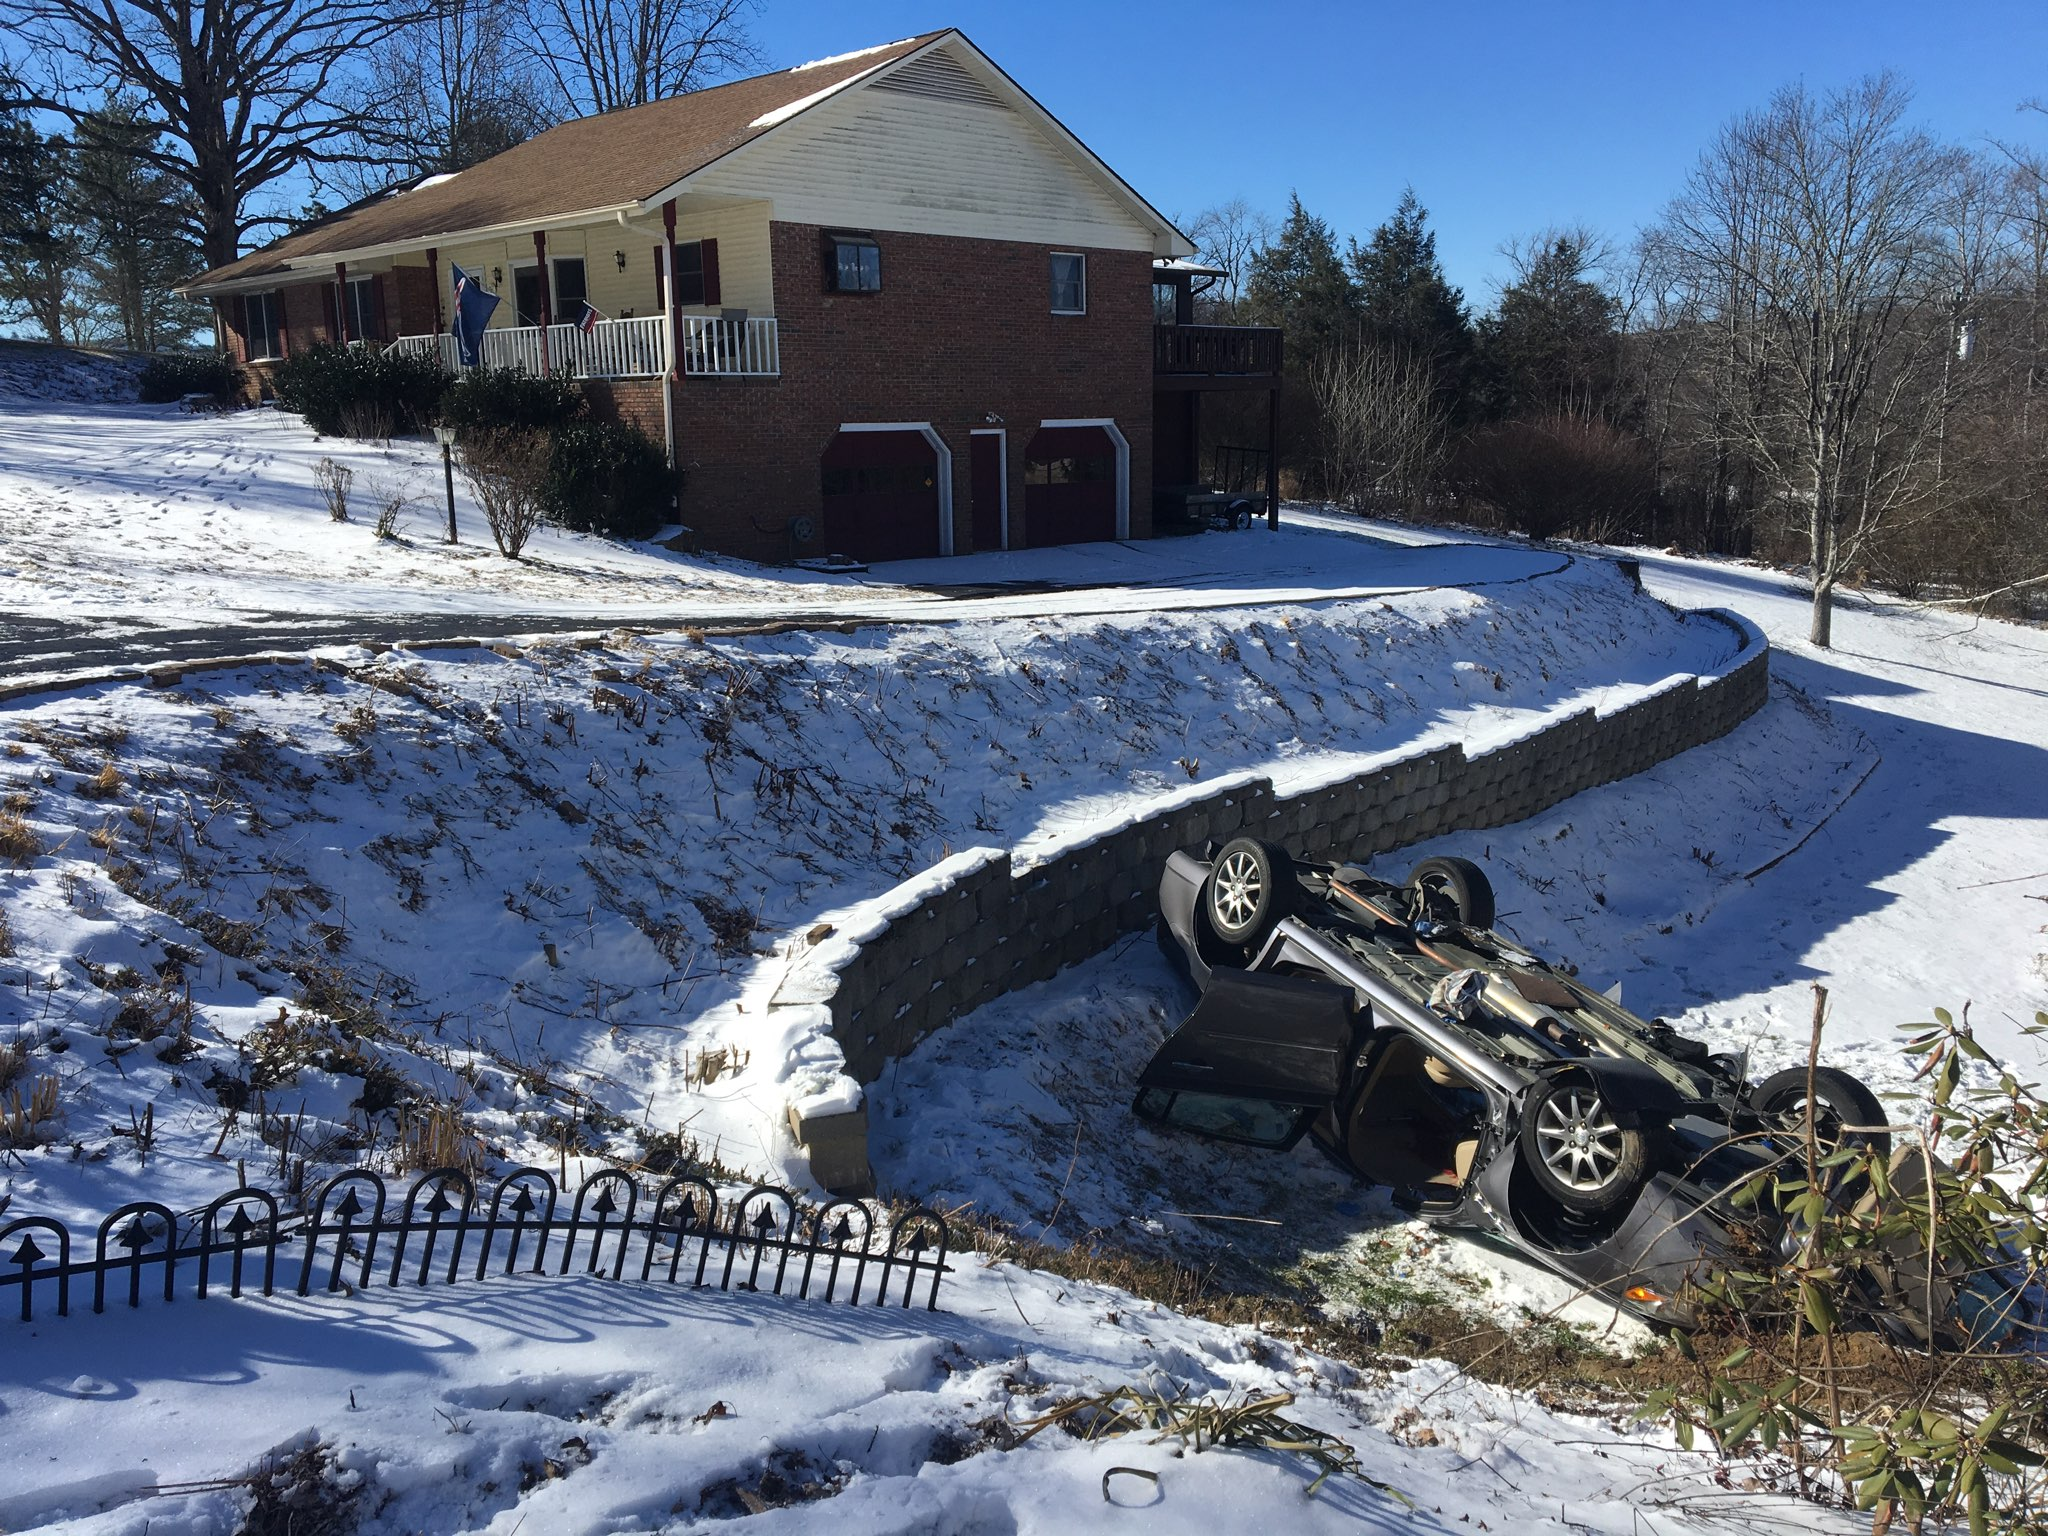 Highway Patrol says a couple was leaving their neighborhood on Mountain Valley Road when their car slid, went into a ditch and overturned. (Photo credit: WLOS Staff)